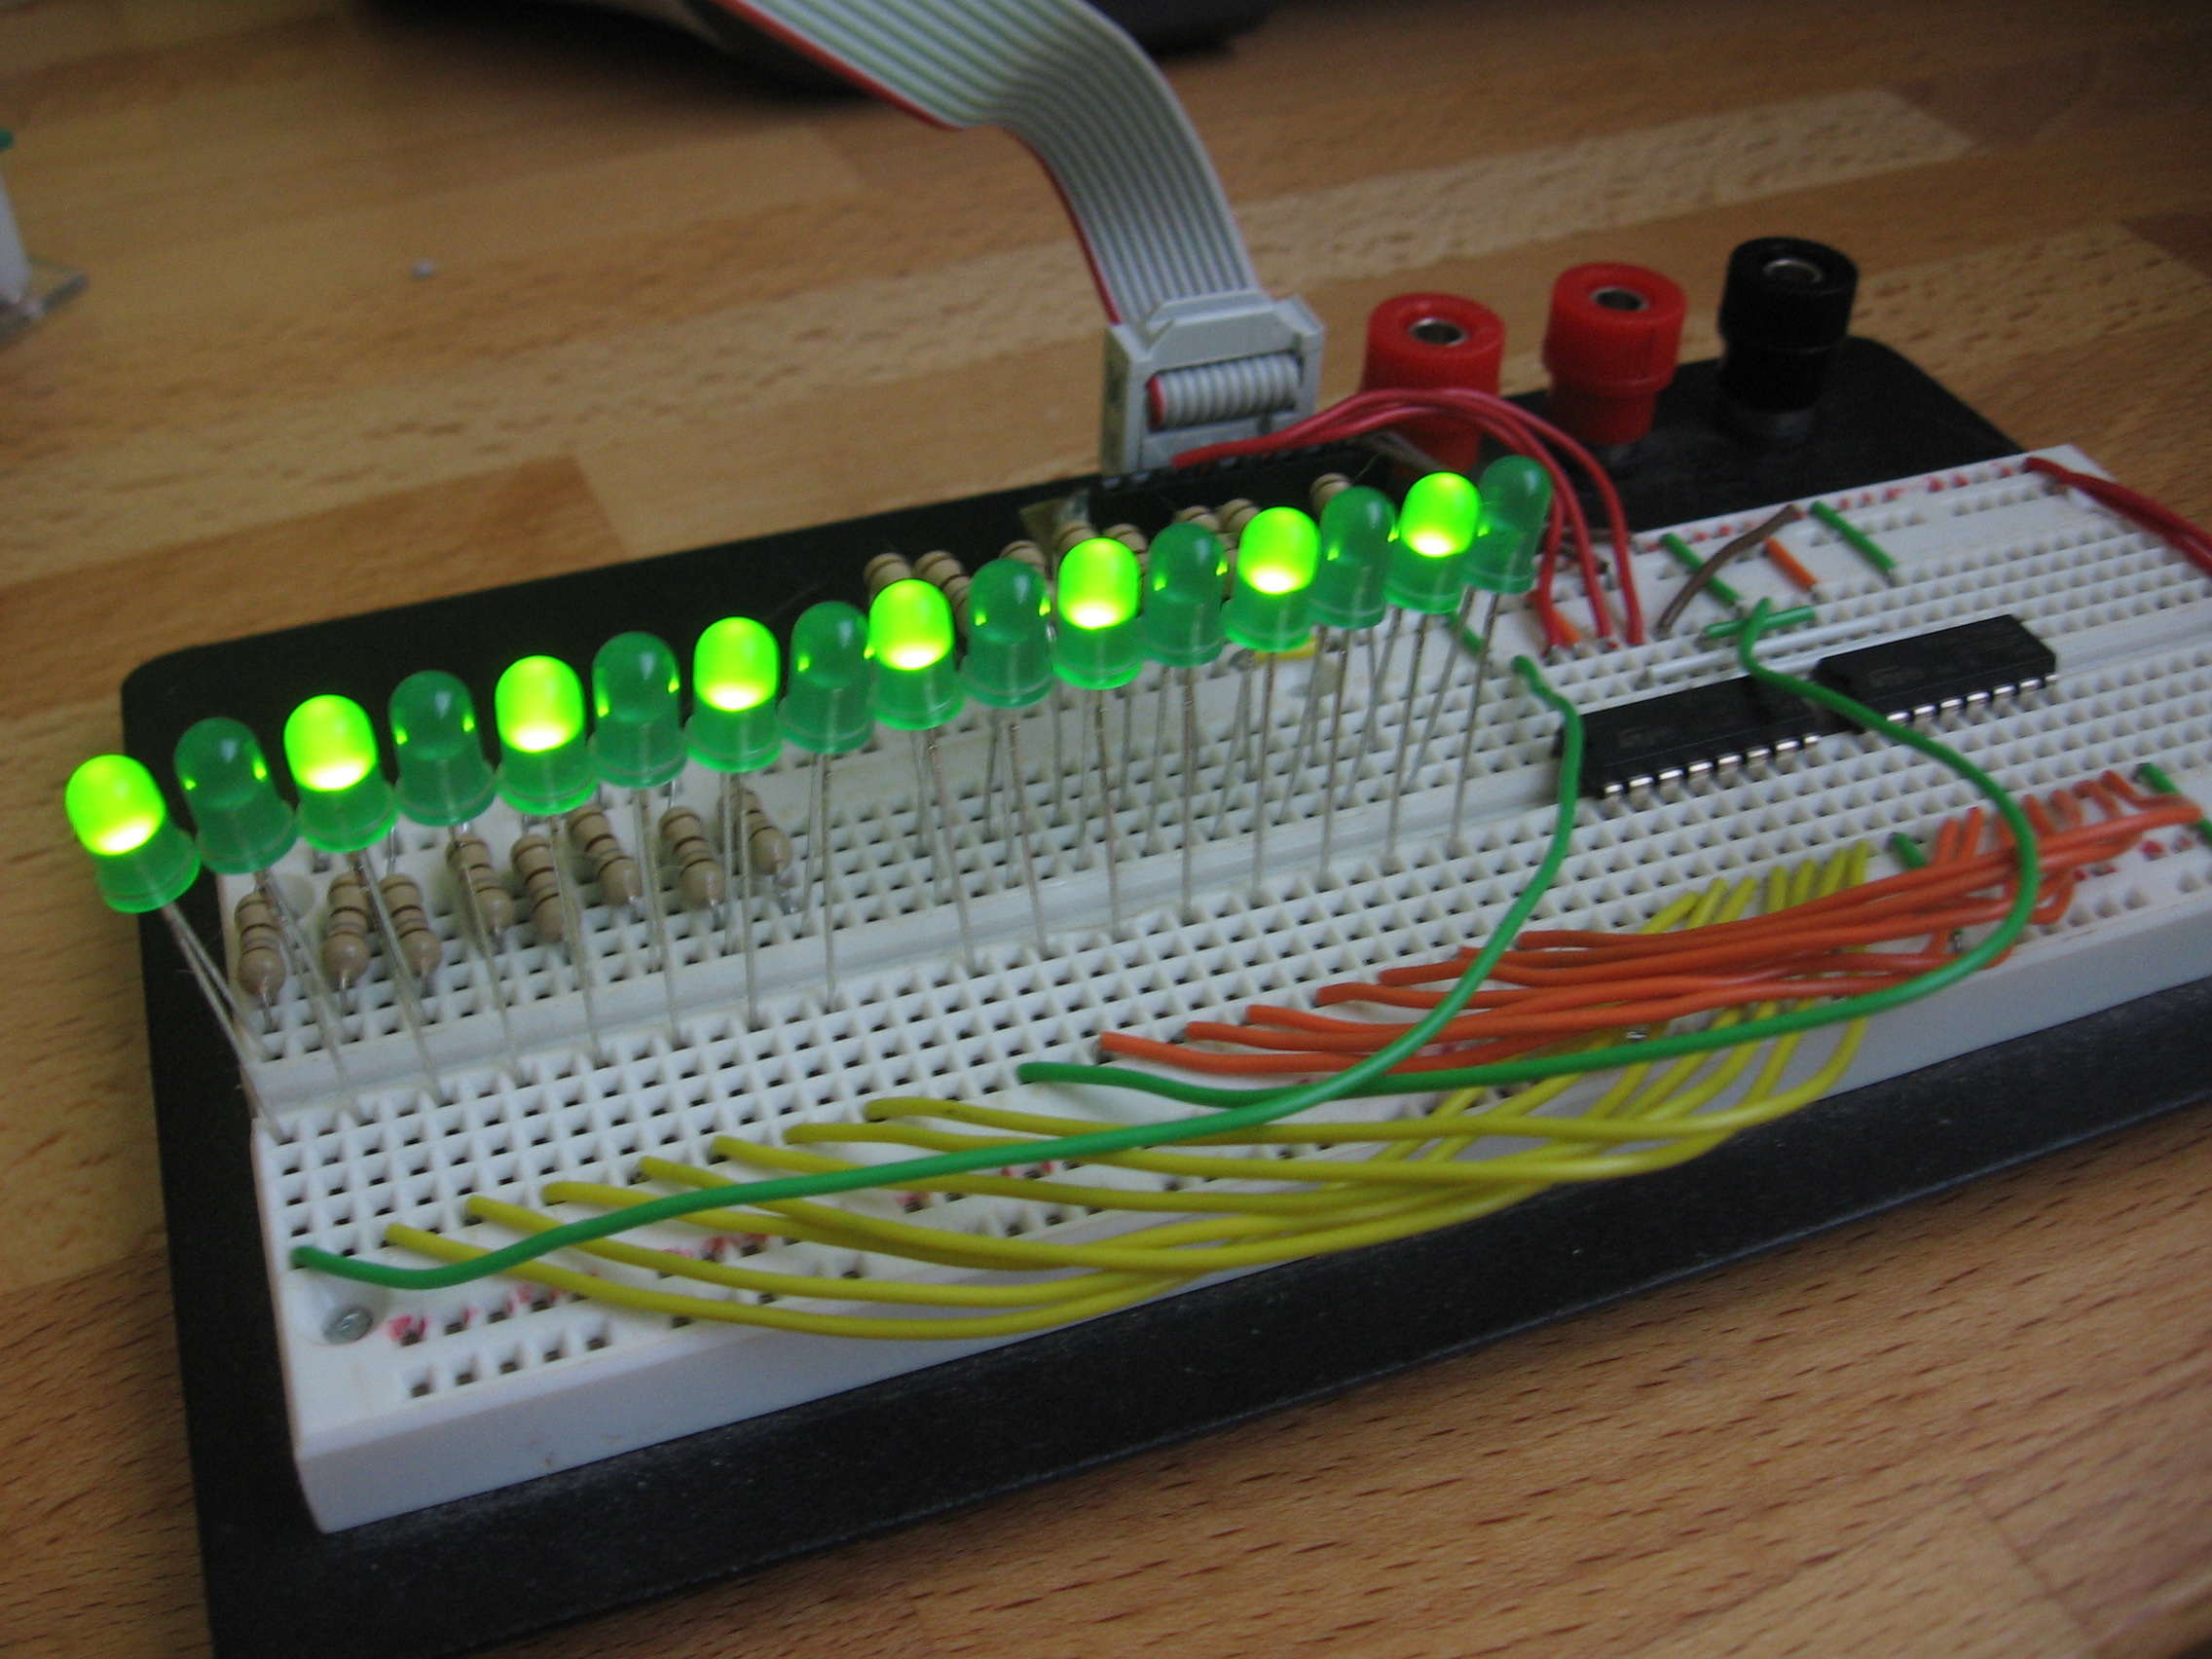 How To Drive 595 Shift Registers With Avr Hardware Spi Jumptuck The Is Implemented By Using A Atmega88 Microcontroller Illuminated Leds